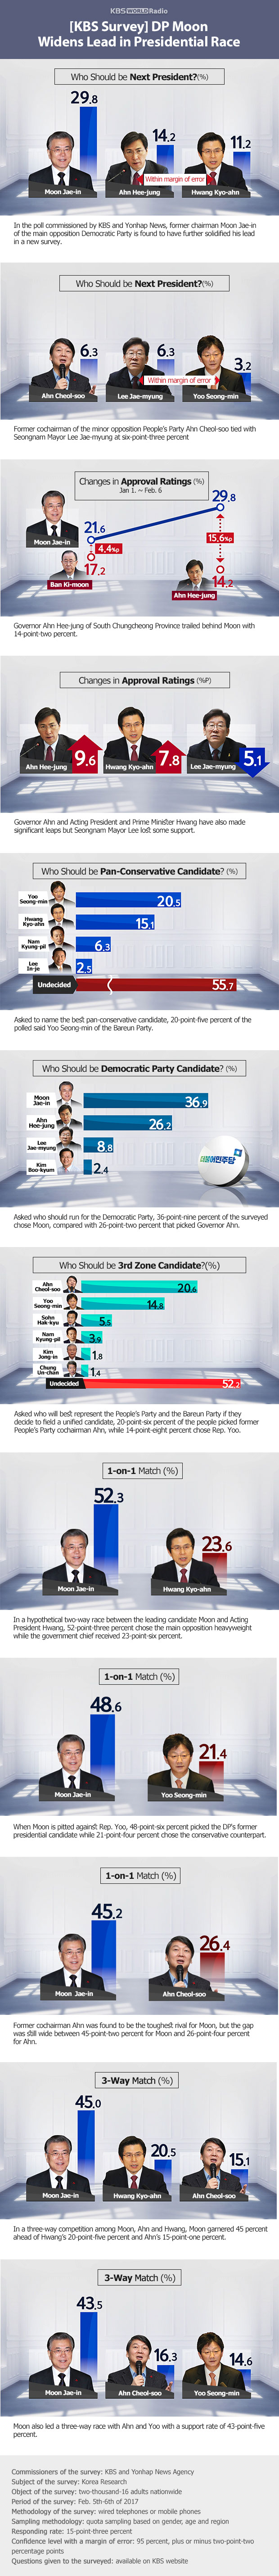 [KBS Survey] DP Moon Widens Lead in Presidential Race